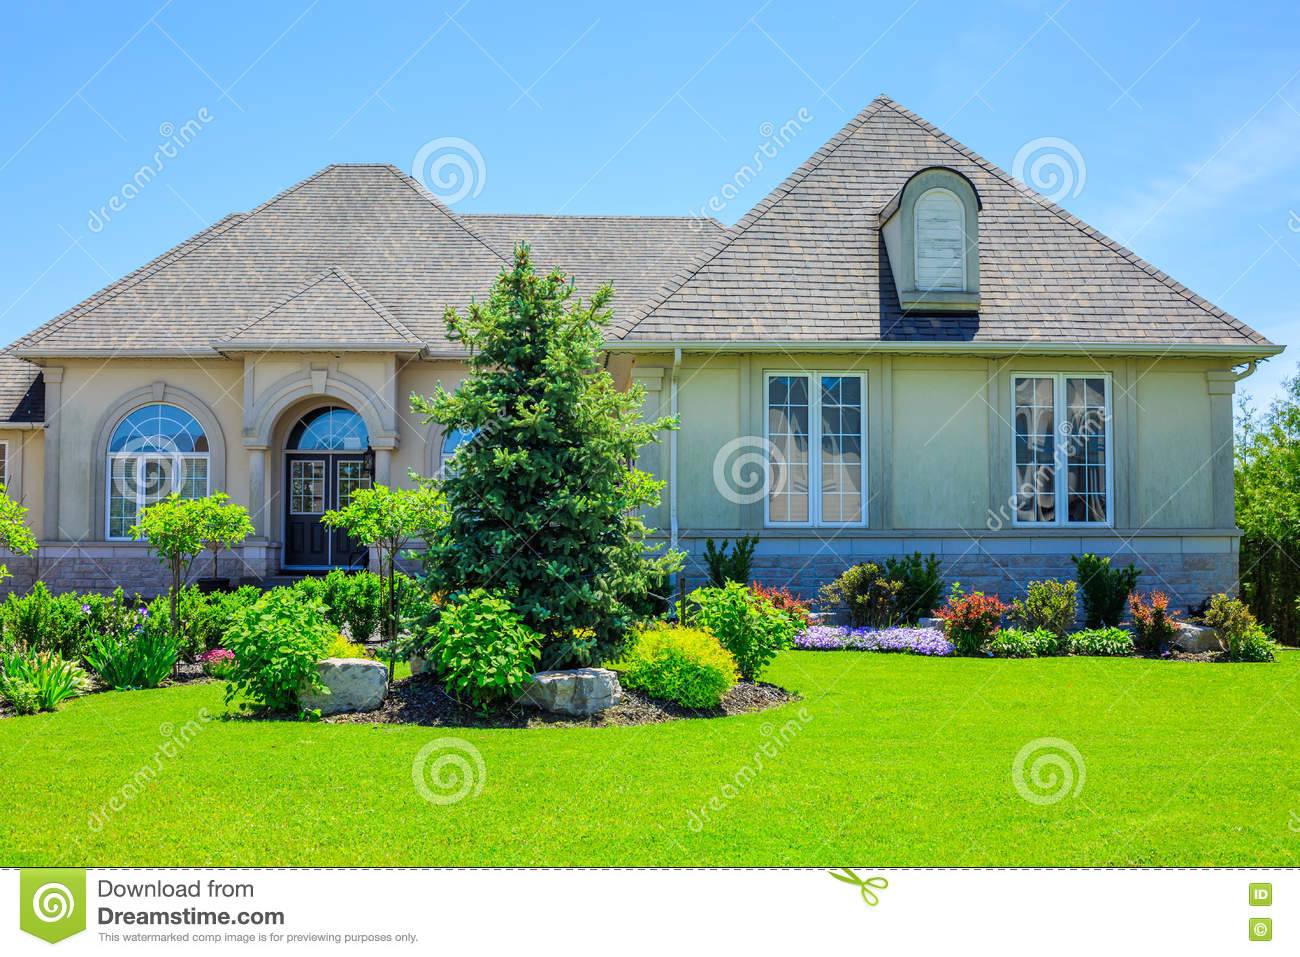 Luxury houses in north america stock photo image 72659121 Custom made houses